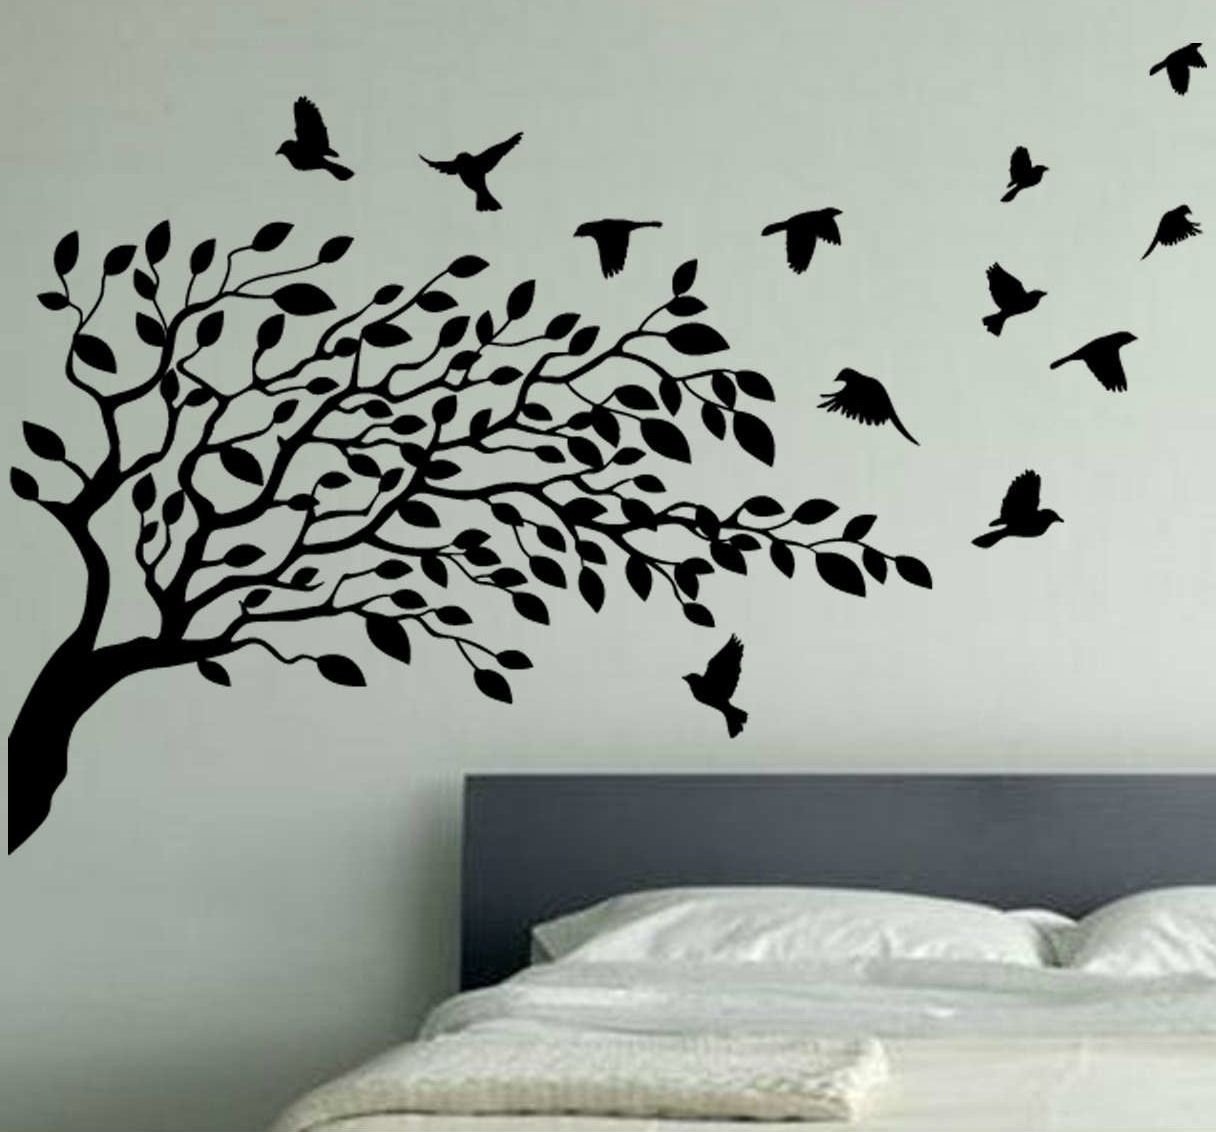 Wallpaper wall decals stickers art vinyl removable for Wall art wallpaper